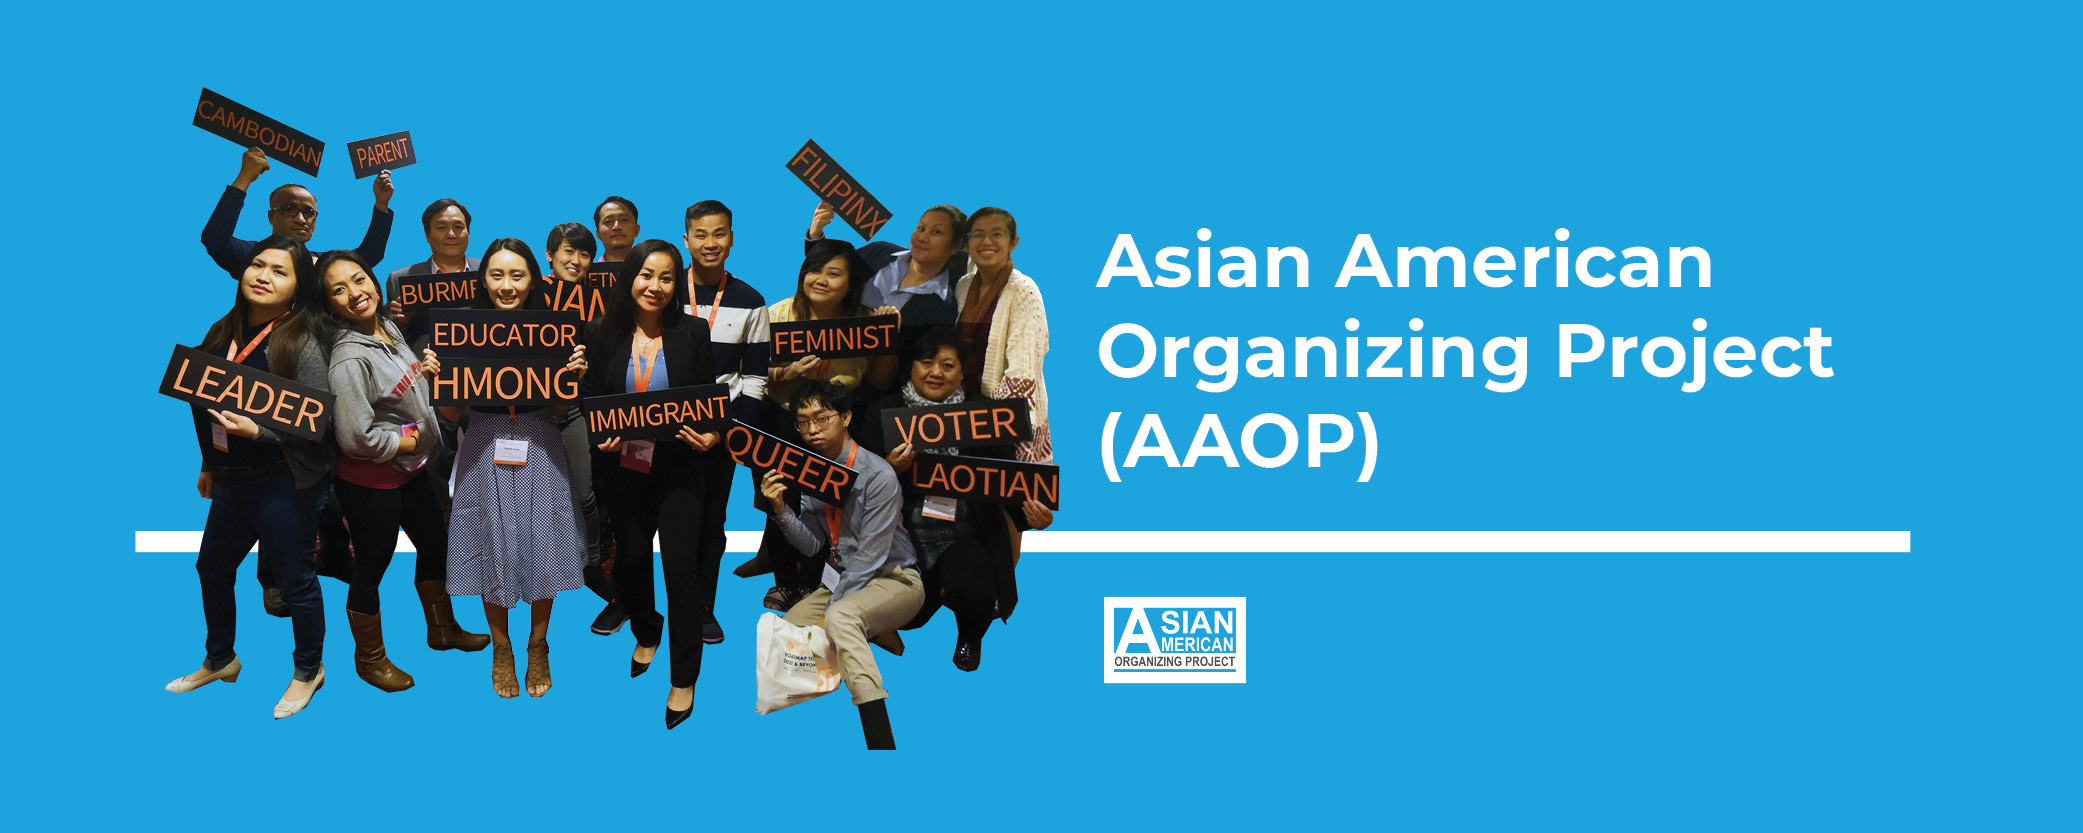 Asian American Organizing Project (AAOP)